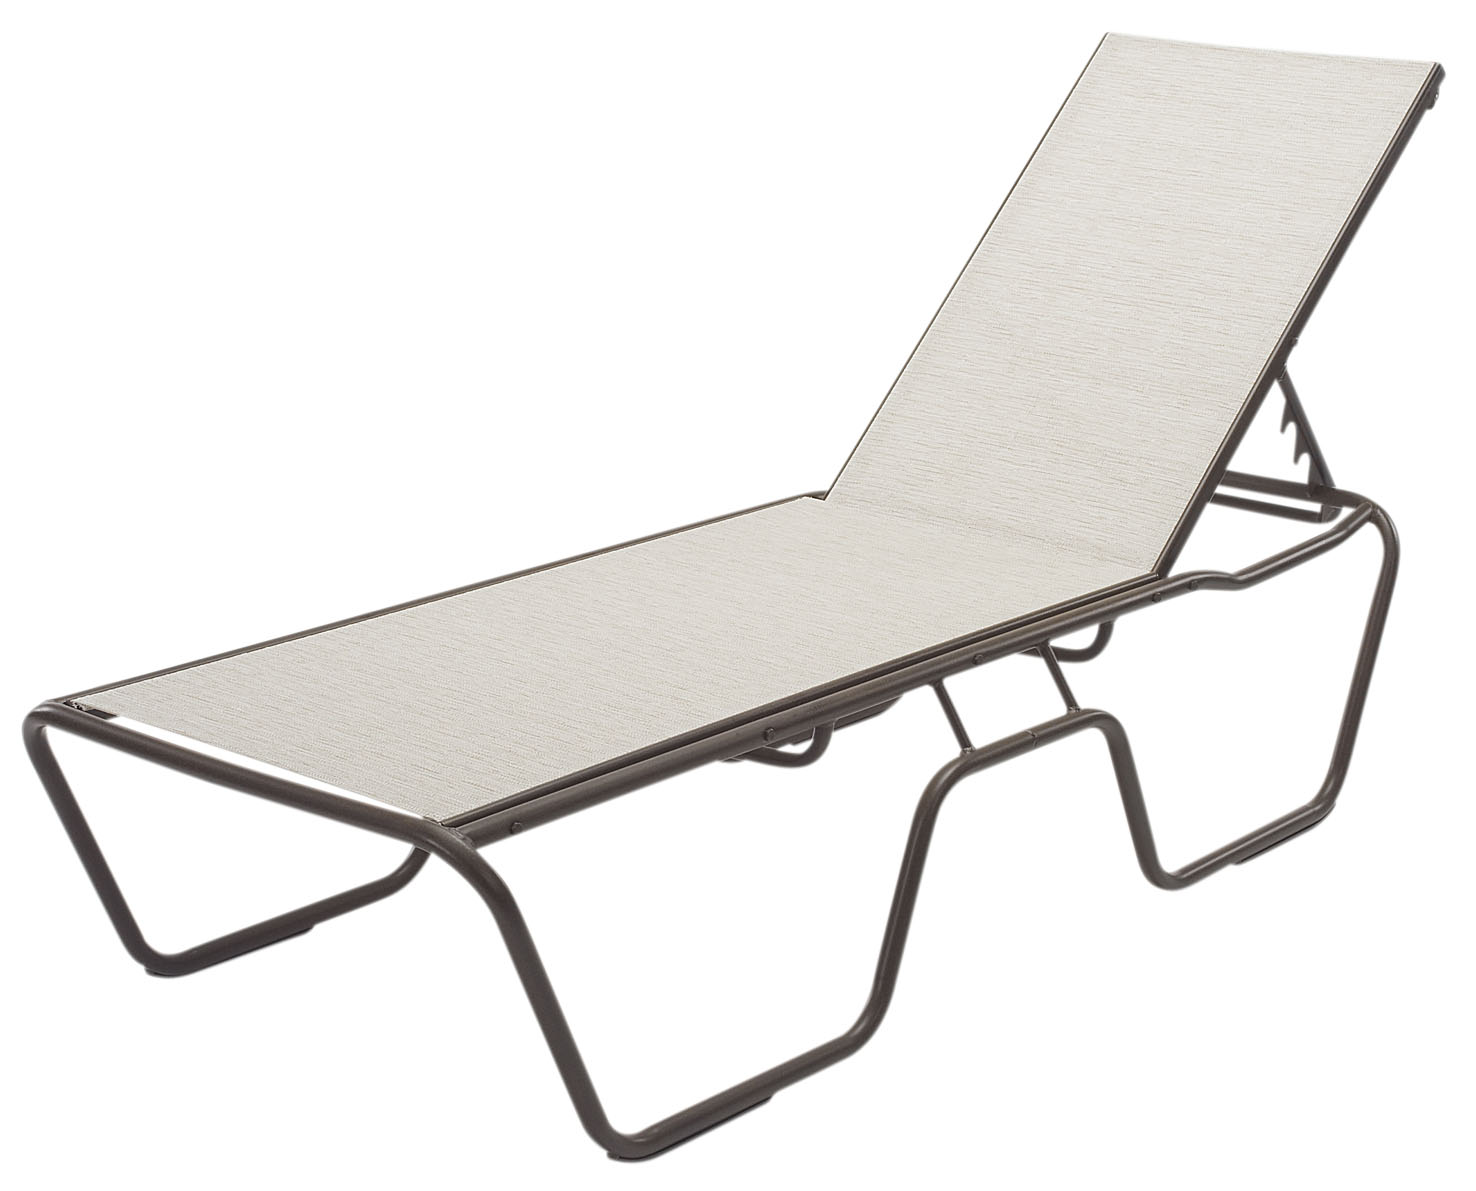 Seat Country Club Aluminum Sling Patio Chaise Lounge  Most Economical